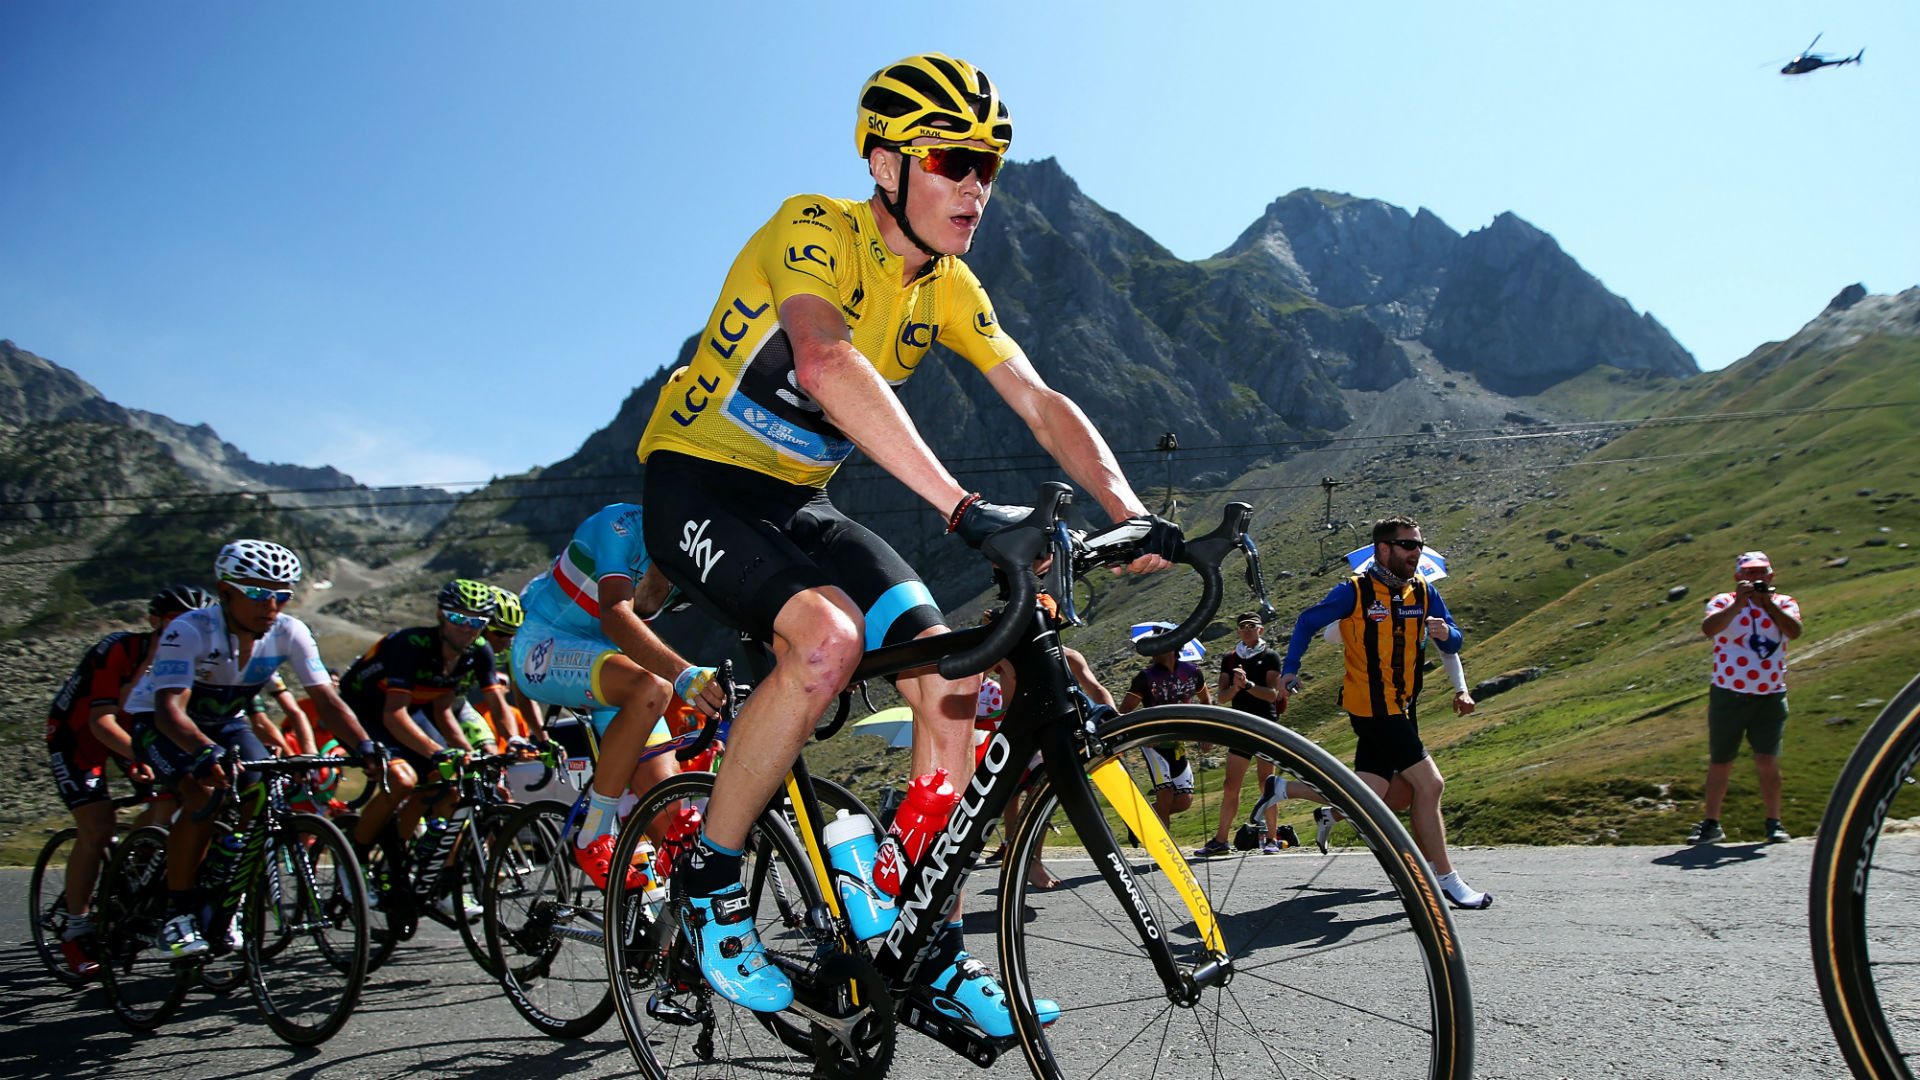 Tour de France 2015: Results, leader, overall standings after Stage ...